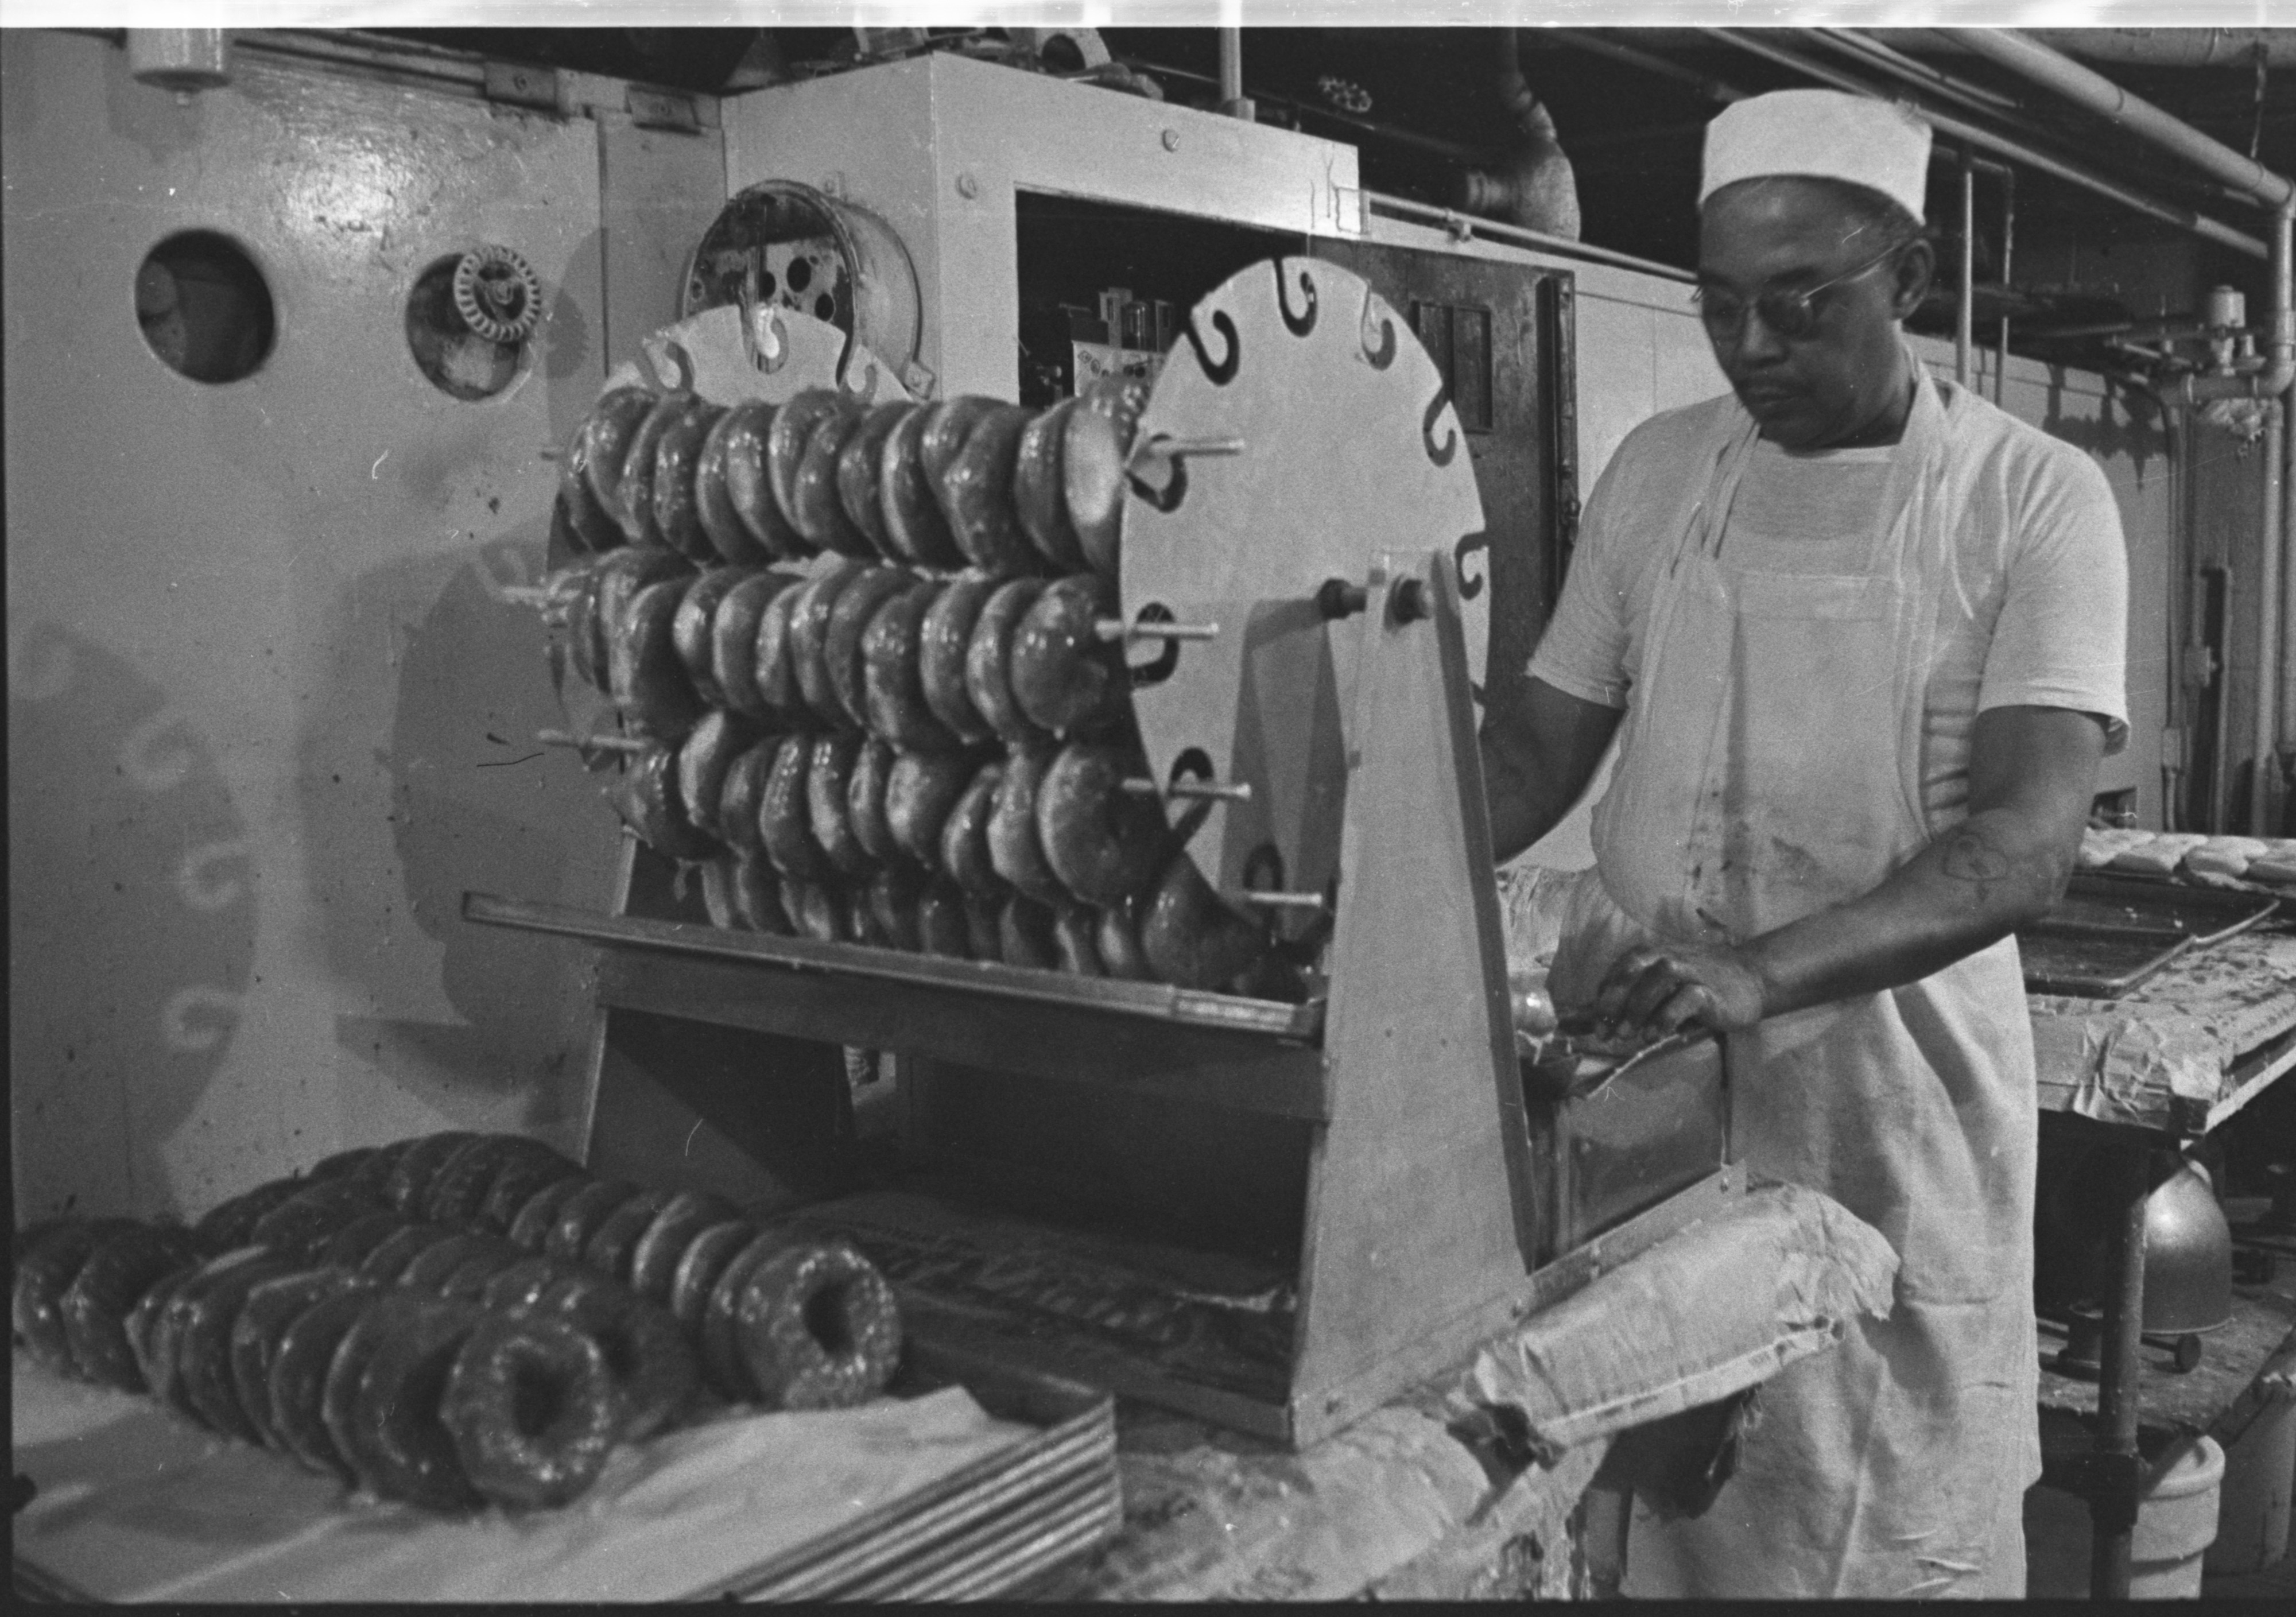 Time To Make the Doughnuts at Quality Bakery, April 1974 image